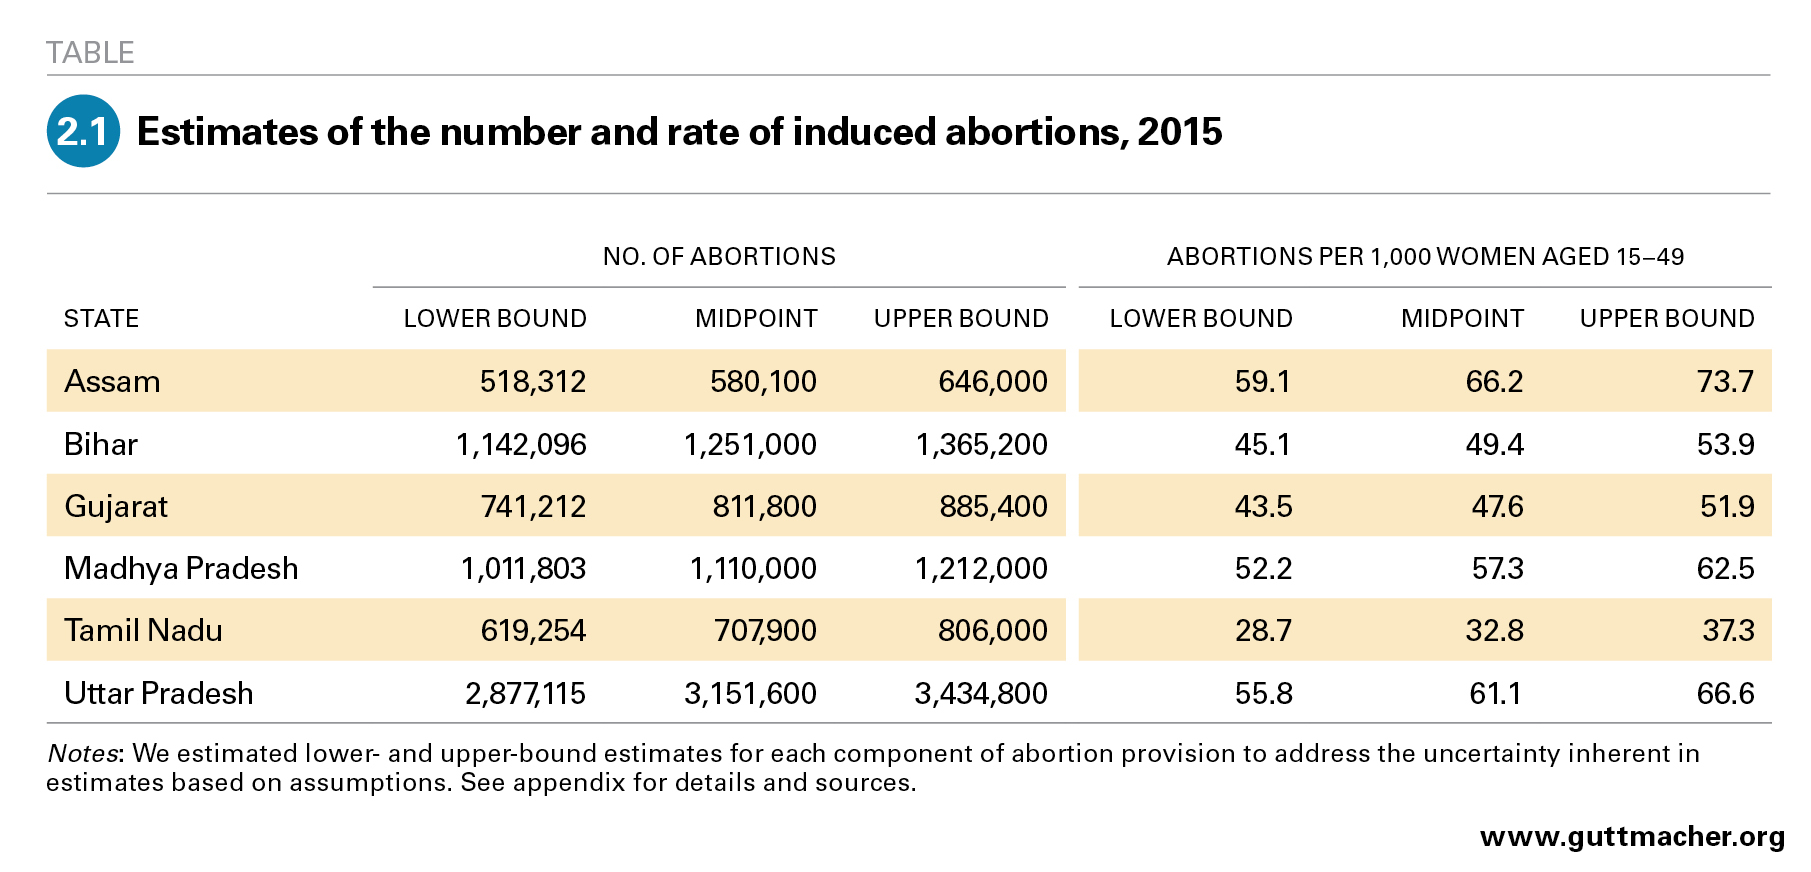 Abortion and Unintended Pregnancy in Six Indian States